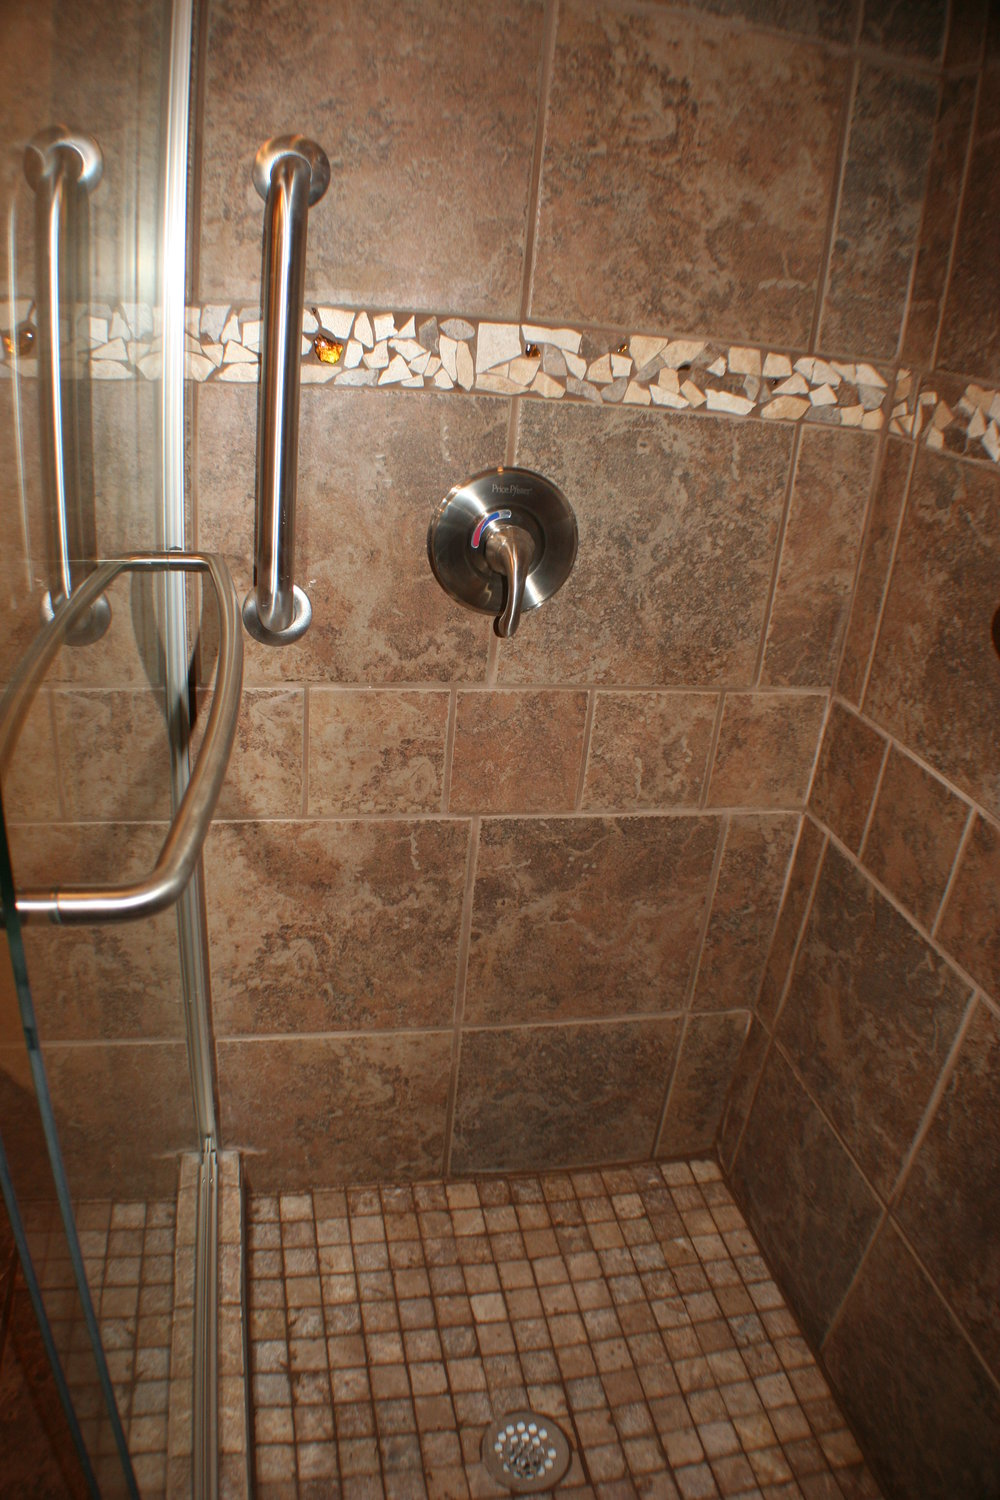 TUBTOSHOWERS CONVERSIONS EZACCESSBATHROOMS.COM 8322028453 THAMES 022.JPG